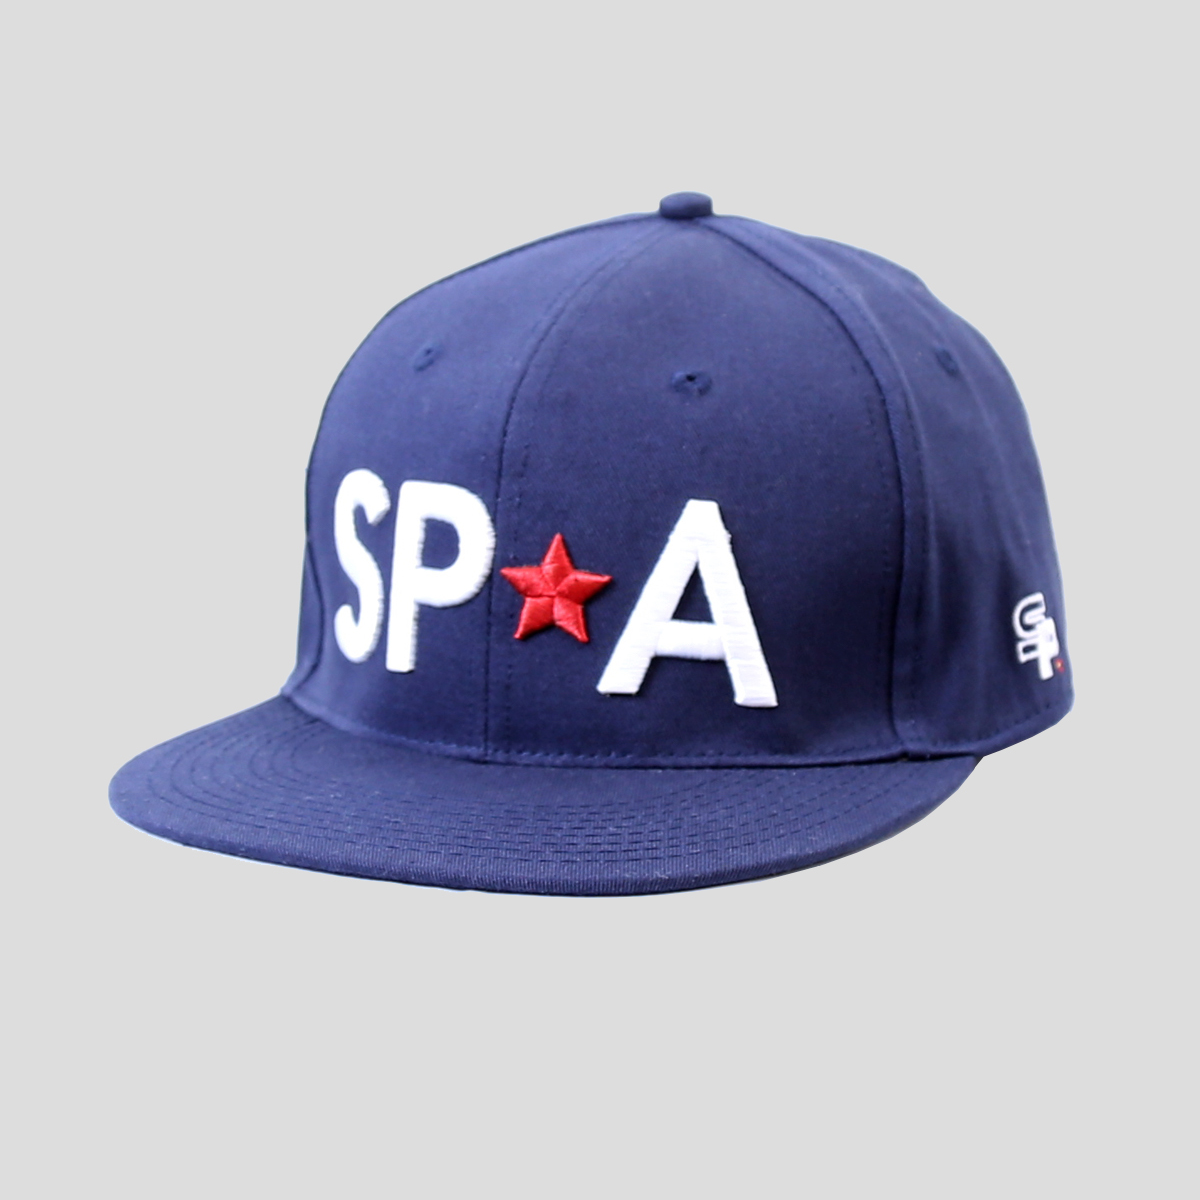 SP Aesthetics 'Snapback' Hat – Blue/White/Red